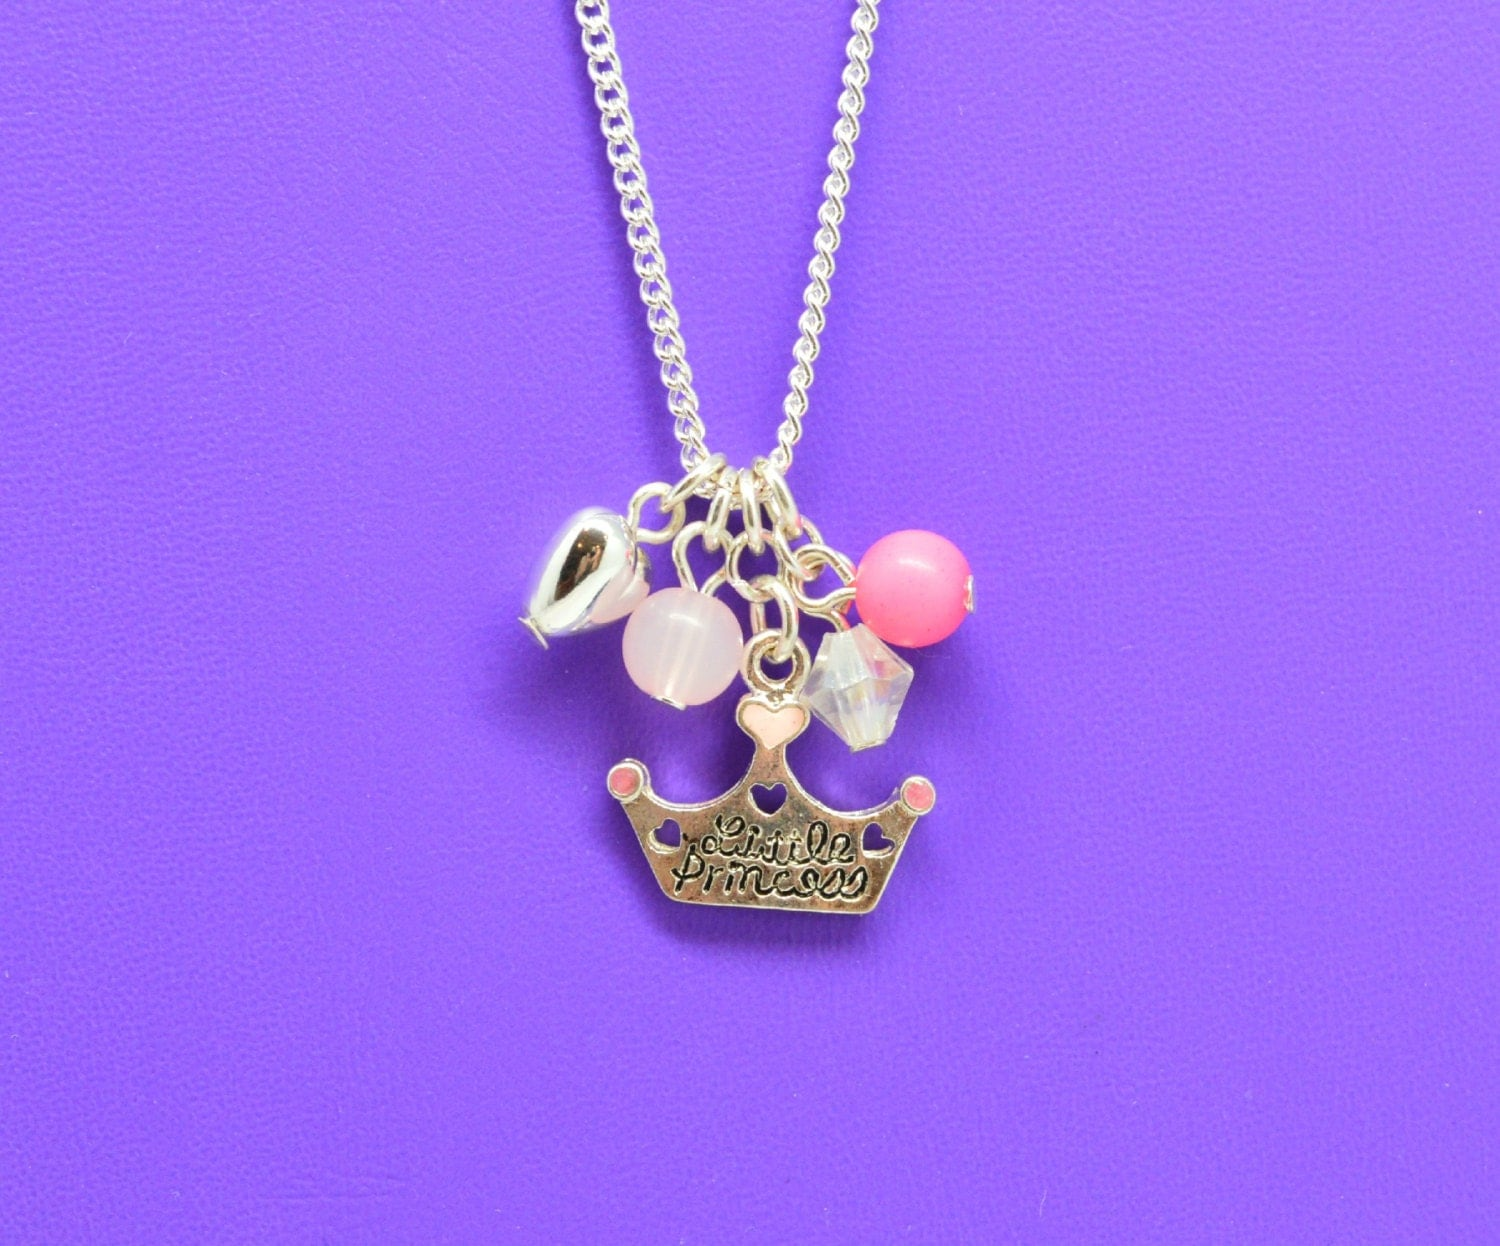 princess crown charm necklace little girls jewelry adorable. Black Bedroom Furniture Sets. Home Design Ideas